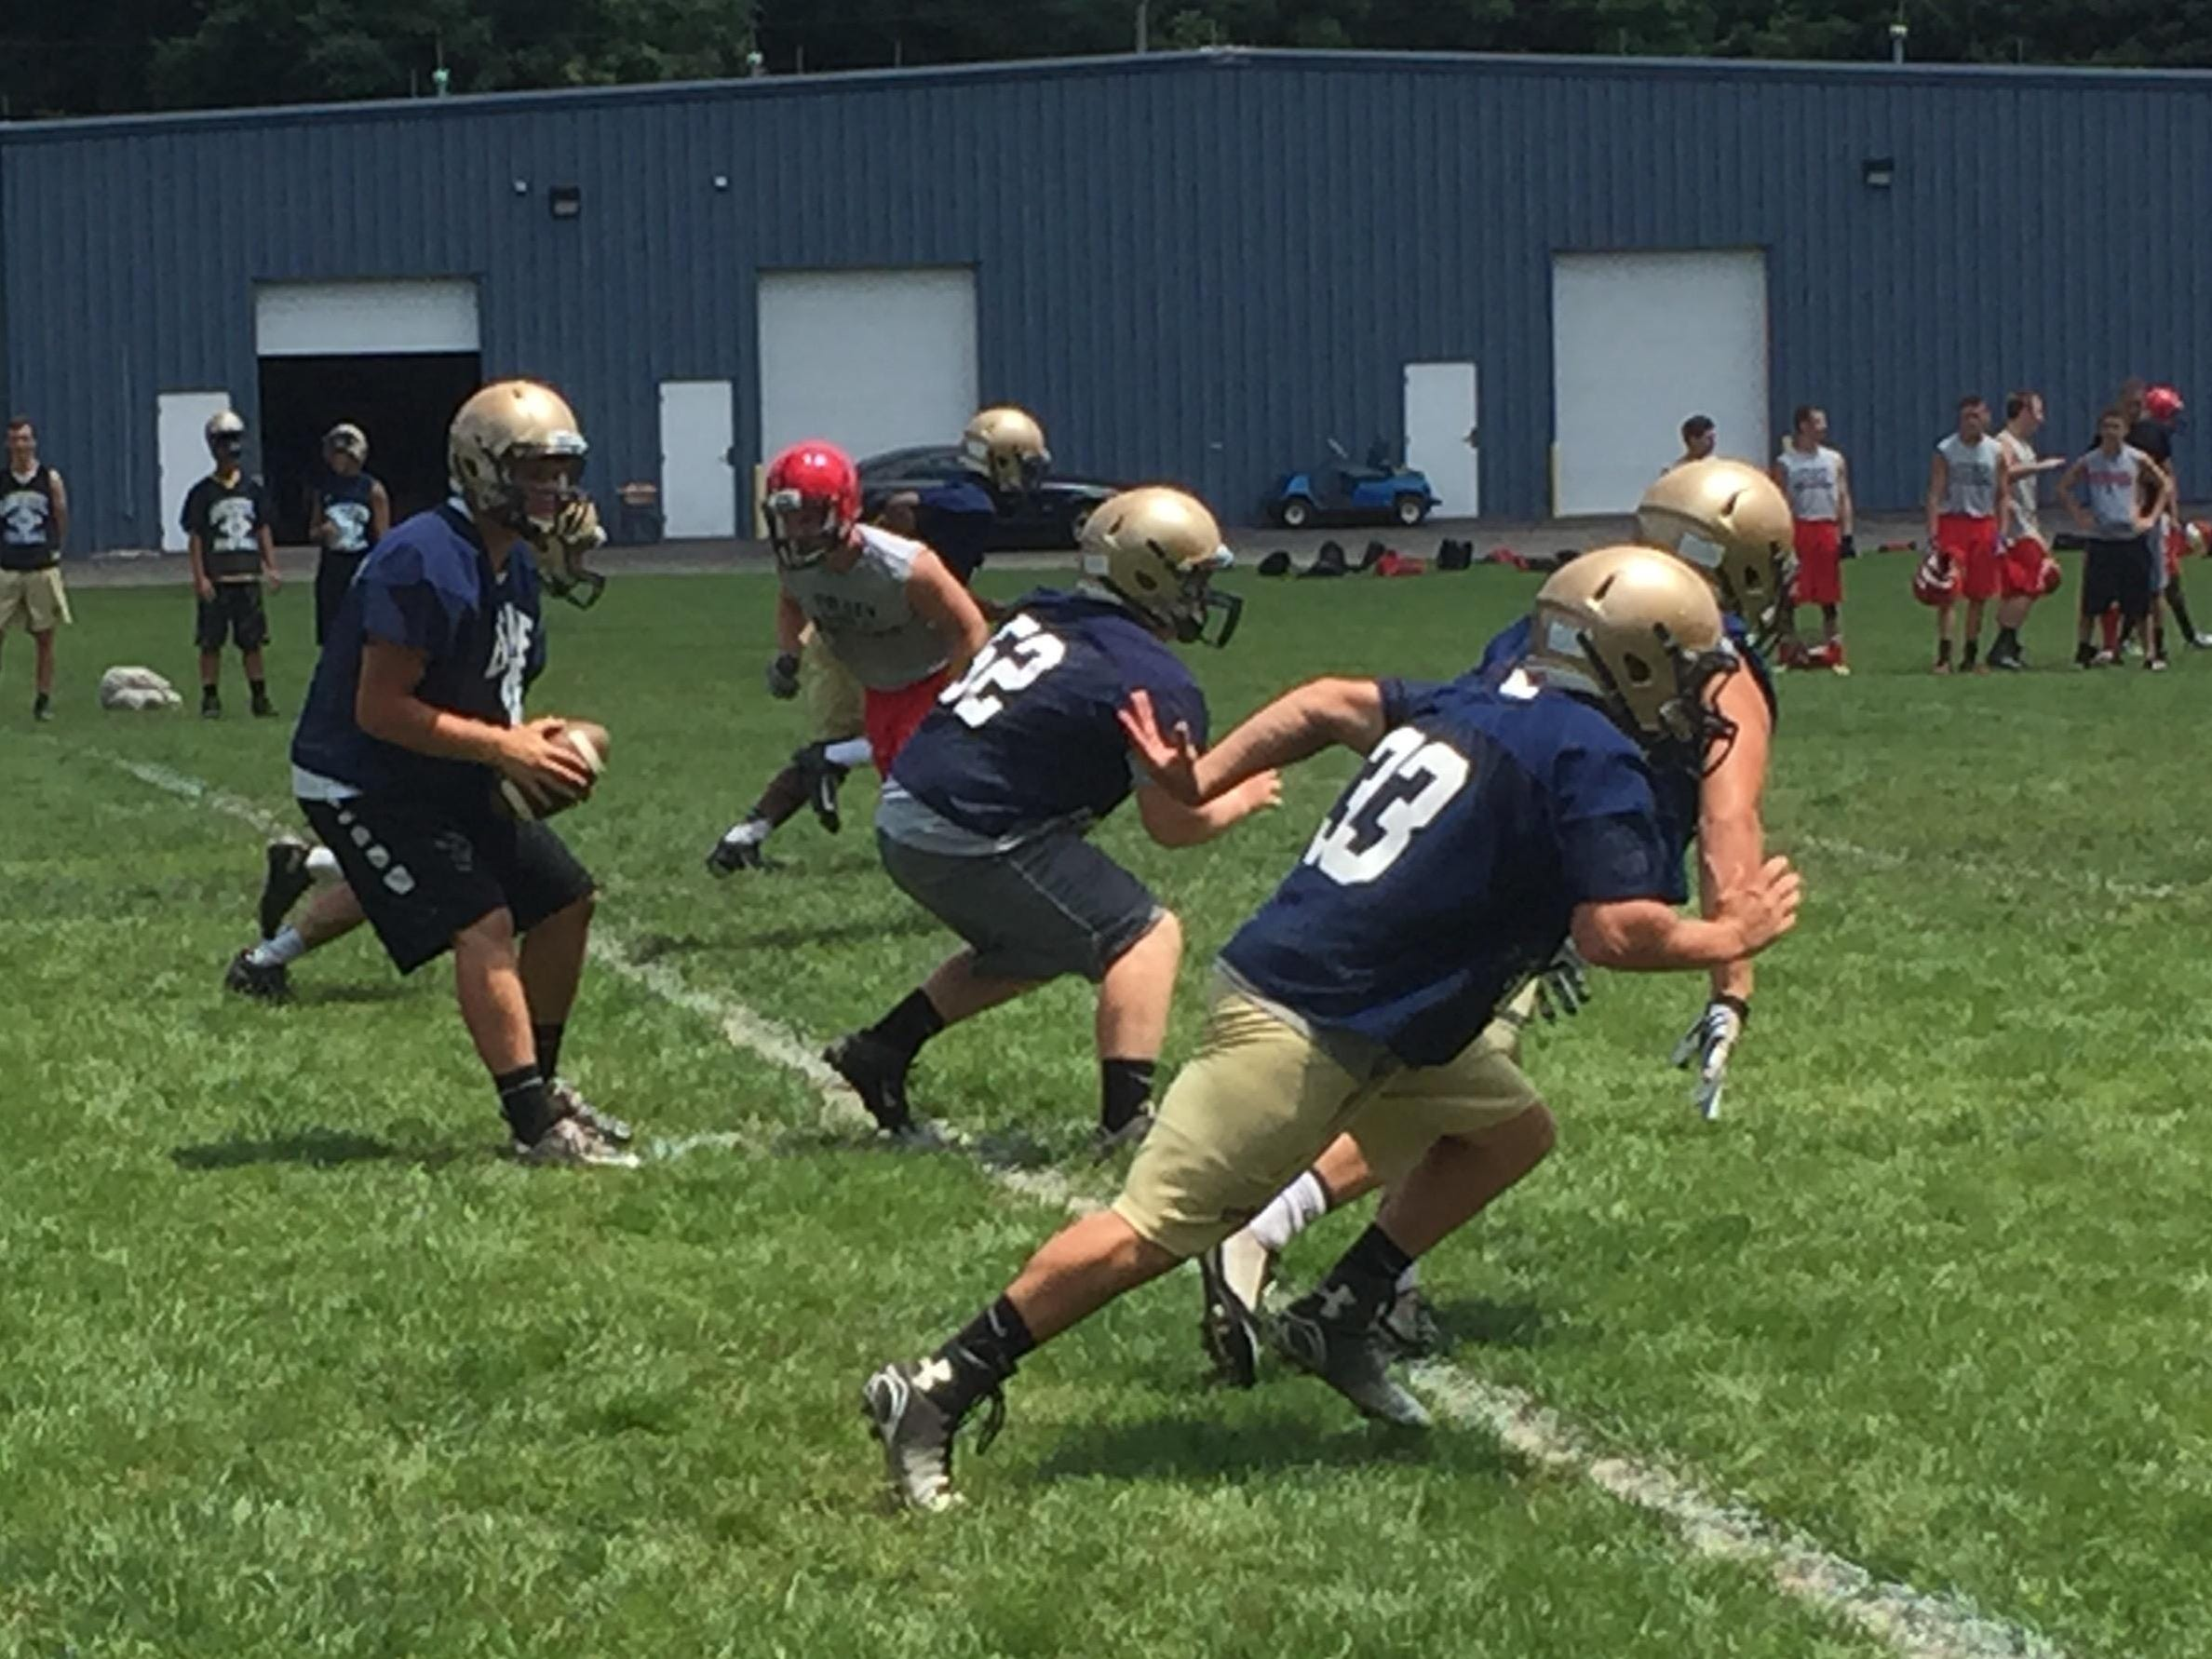 Lancaster quarterback J.D. Arbuckle drops back to pass during the Golden Gales' 7-on-7 passing scrimmage against Lima Shawnee on Wednesday.